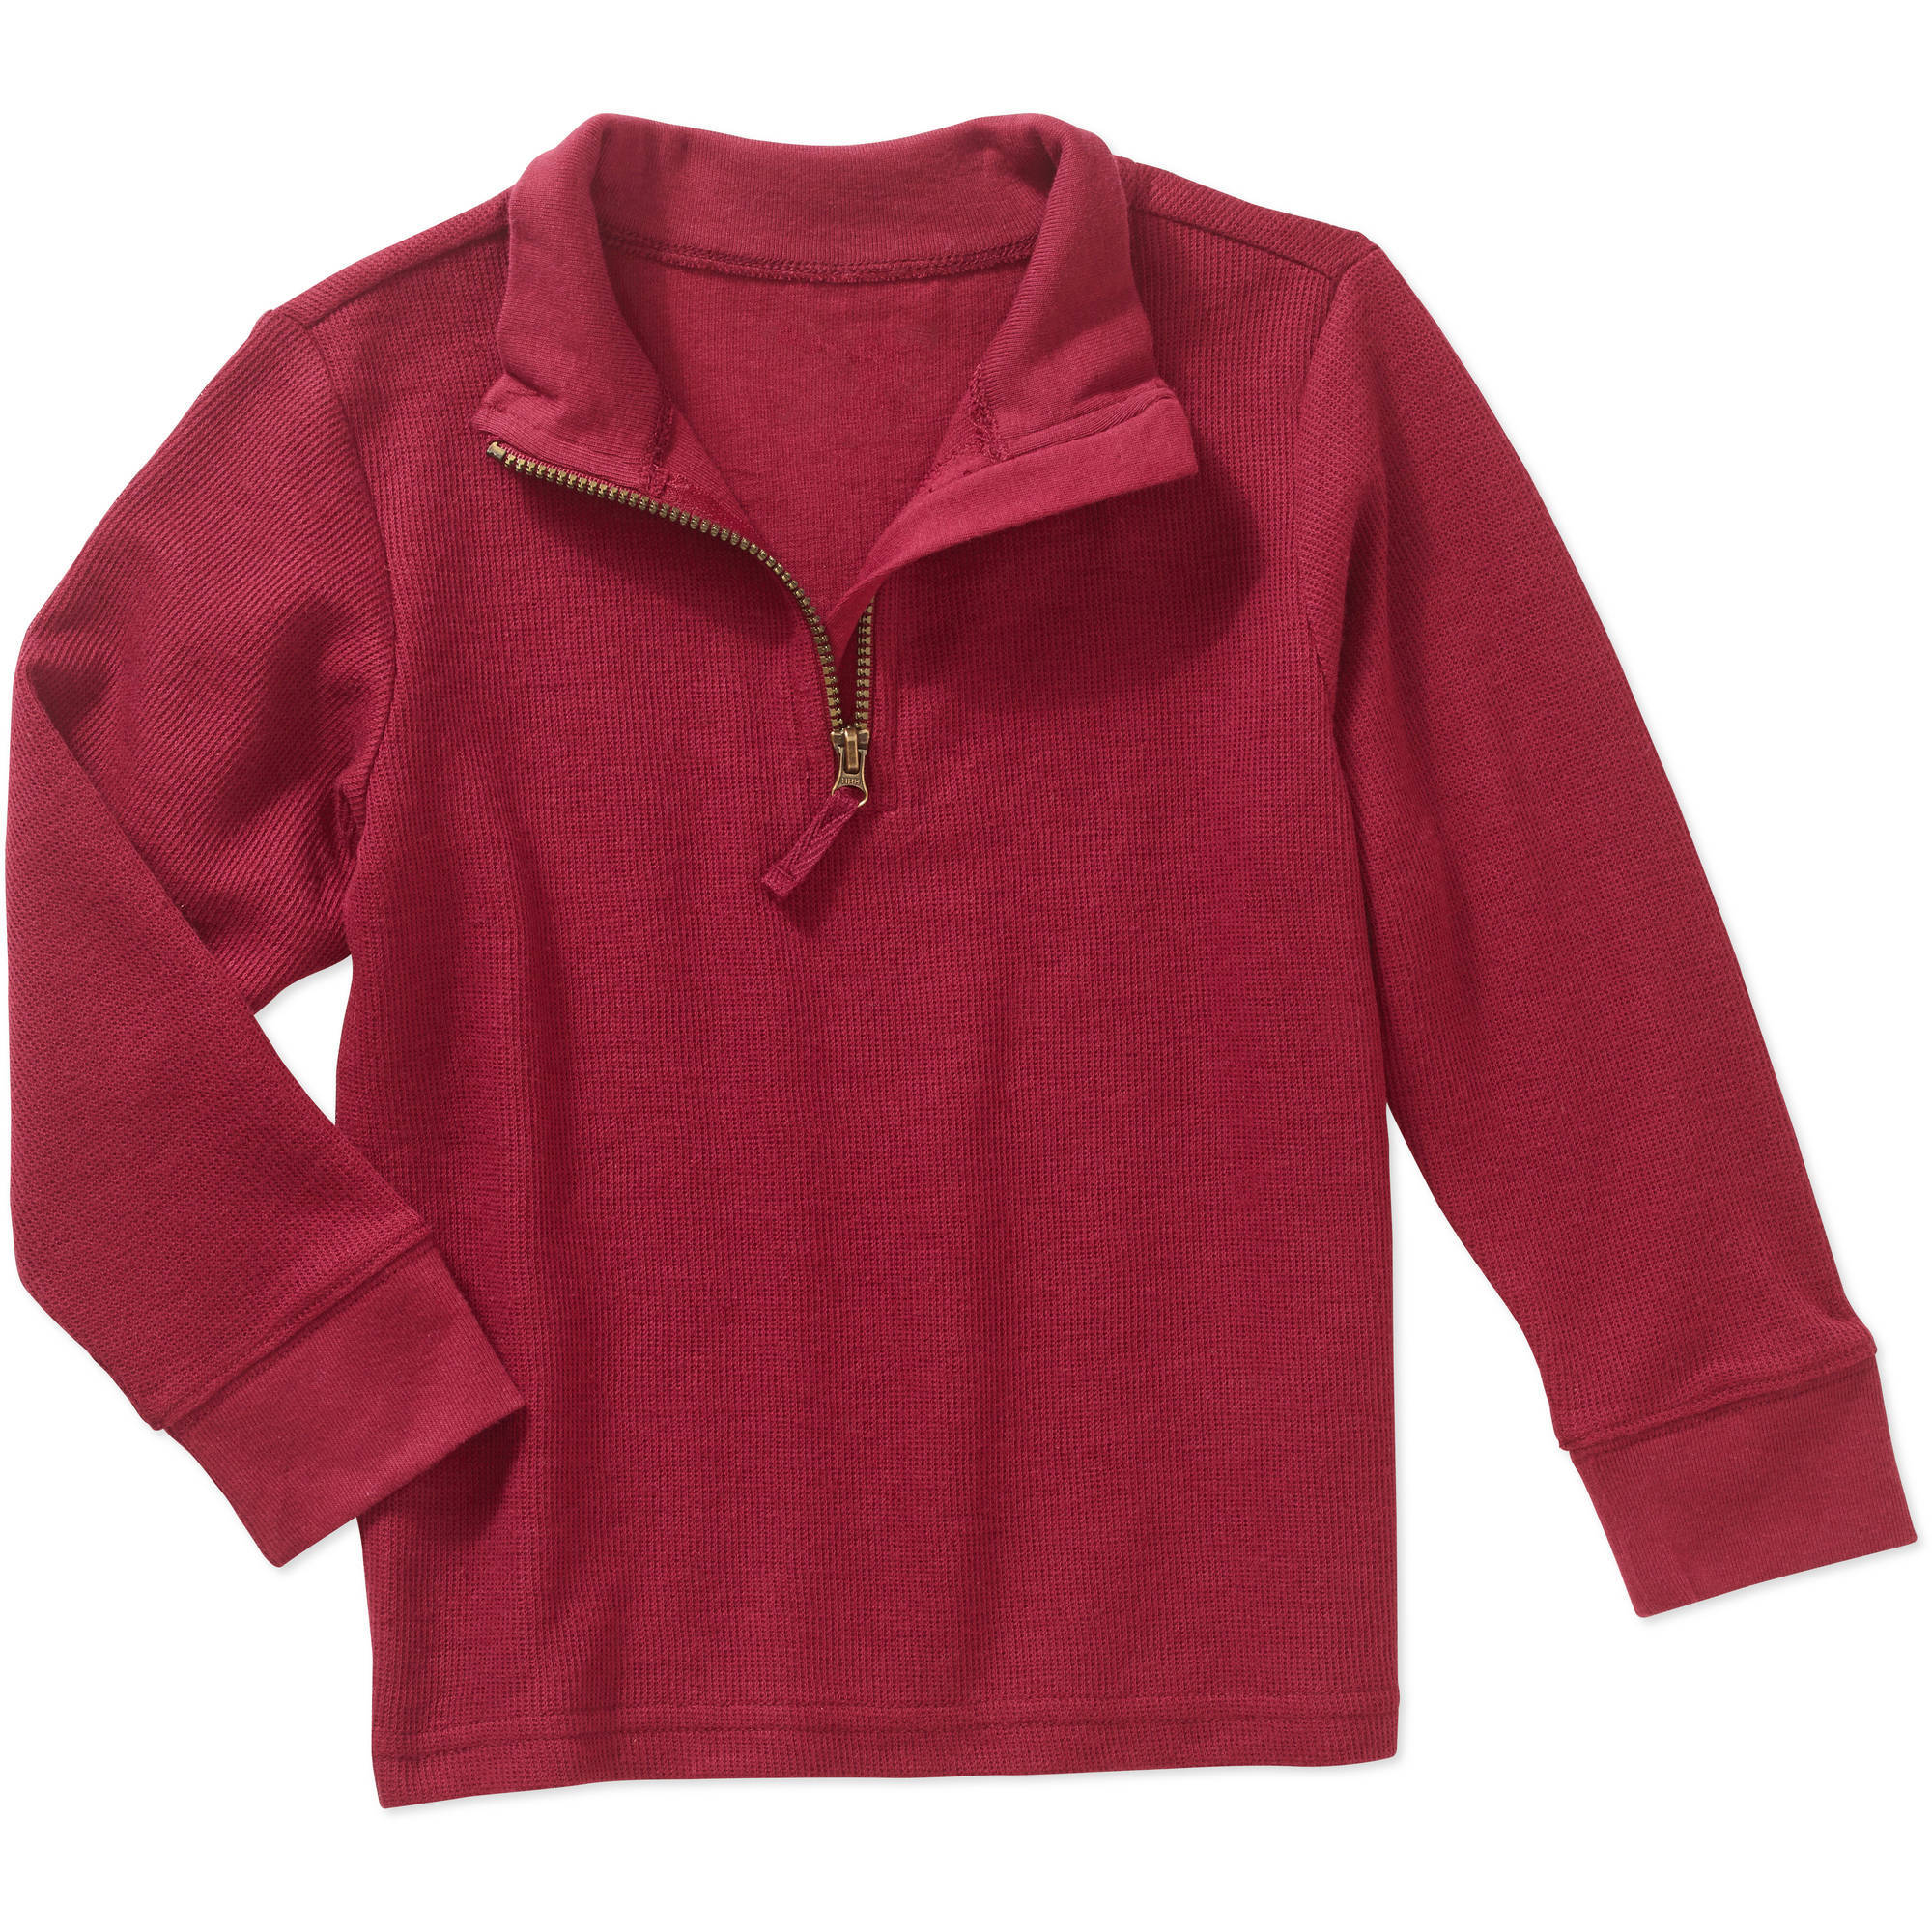 Healthtex Toddler Boy 1/4 Zip Mock Neck Long Sleeve Shirt